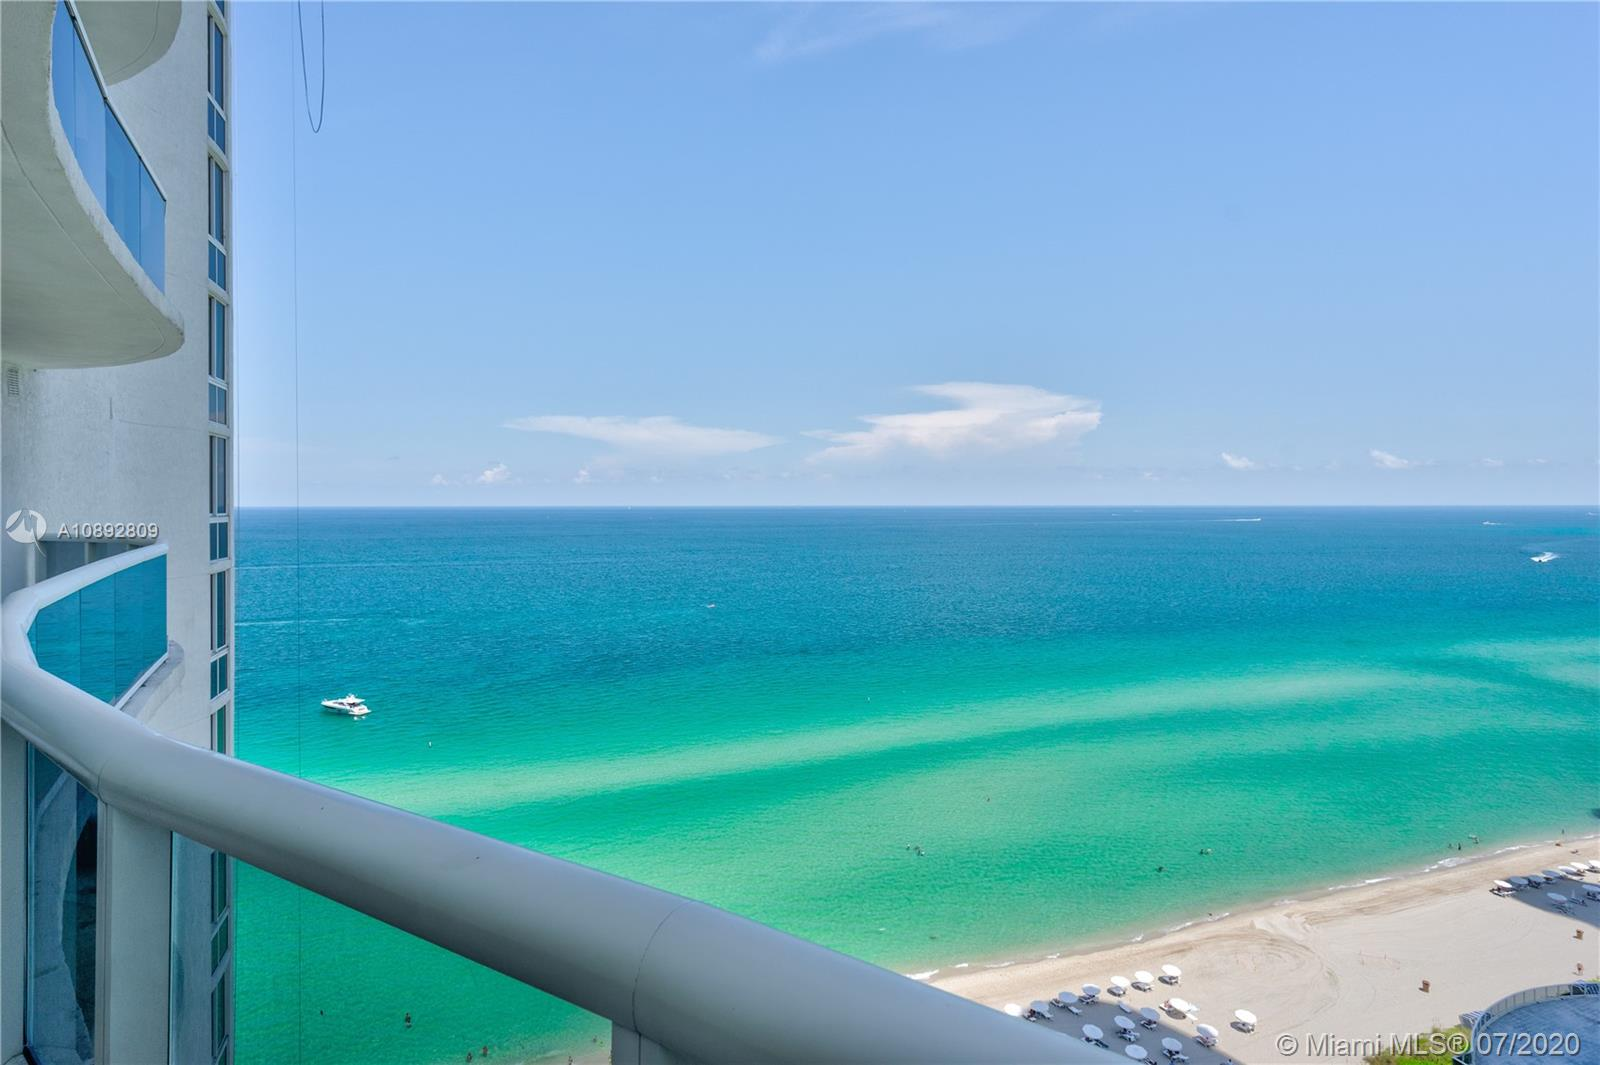 Luxury beachfront apartment on the 17th Floor of the The Trump Tower 1. Two bedrooms with private bathrooms plus one closed den with private bathroom. Completely remodeled unit. Open Kitchen with extra custom-made counter with wine cellar and minibar. White cabinets and new sinks. New top of the line appliances. Marble floor throughout. High ceiling. Large balcony overlooking the ocean. Recently painted. Beach Service with chairs, towels, umbrellas and restaurant. Great amenities. Pool, Fitness center and Spa, billiard room, Sauna, 24 hrs valet parking, concierge services.